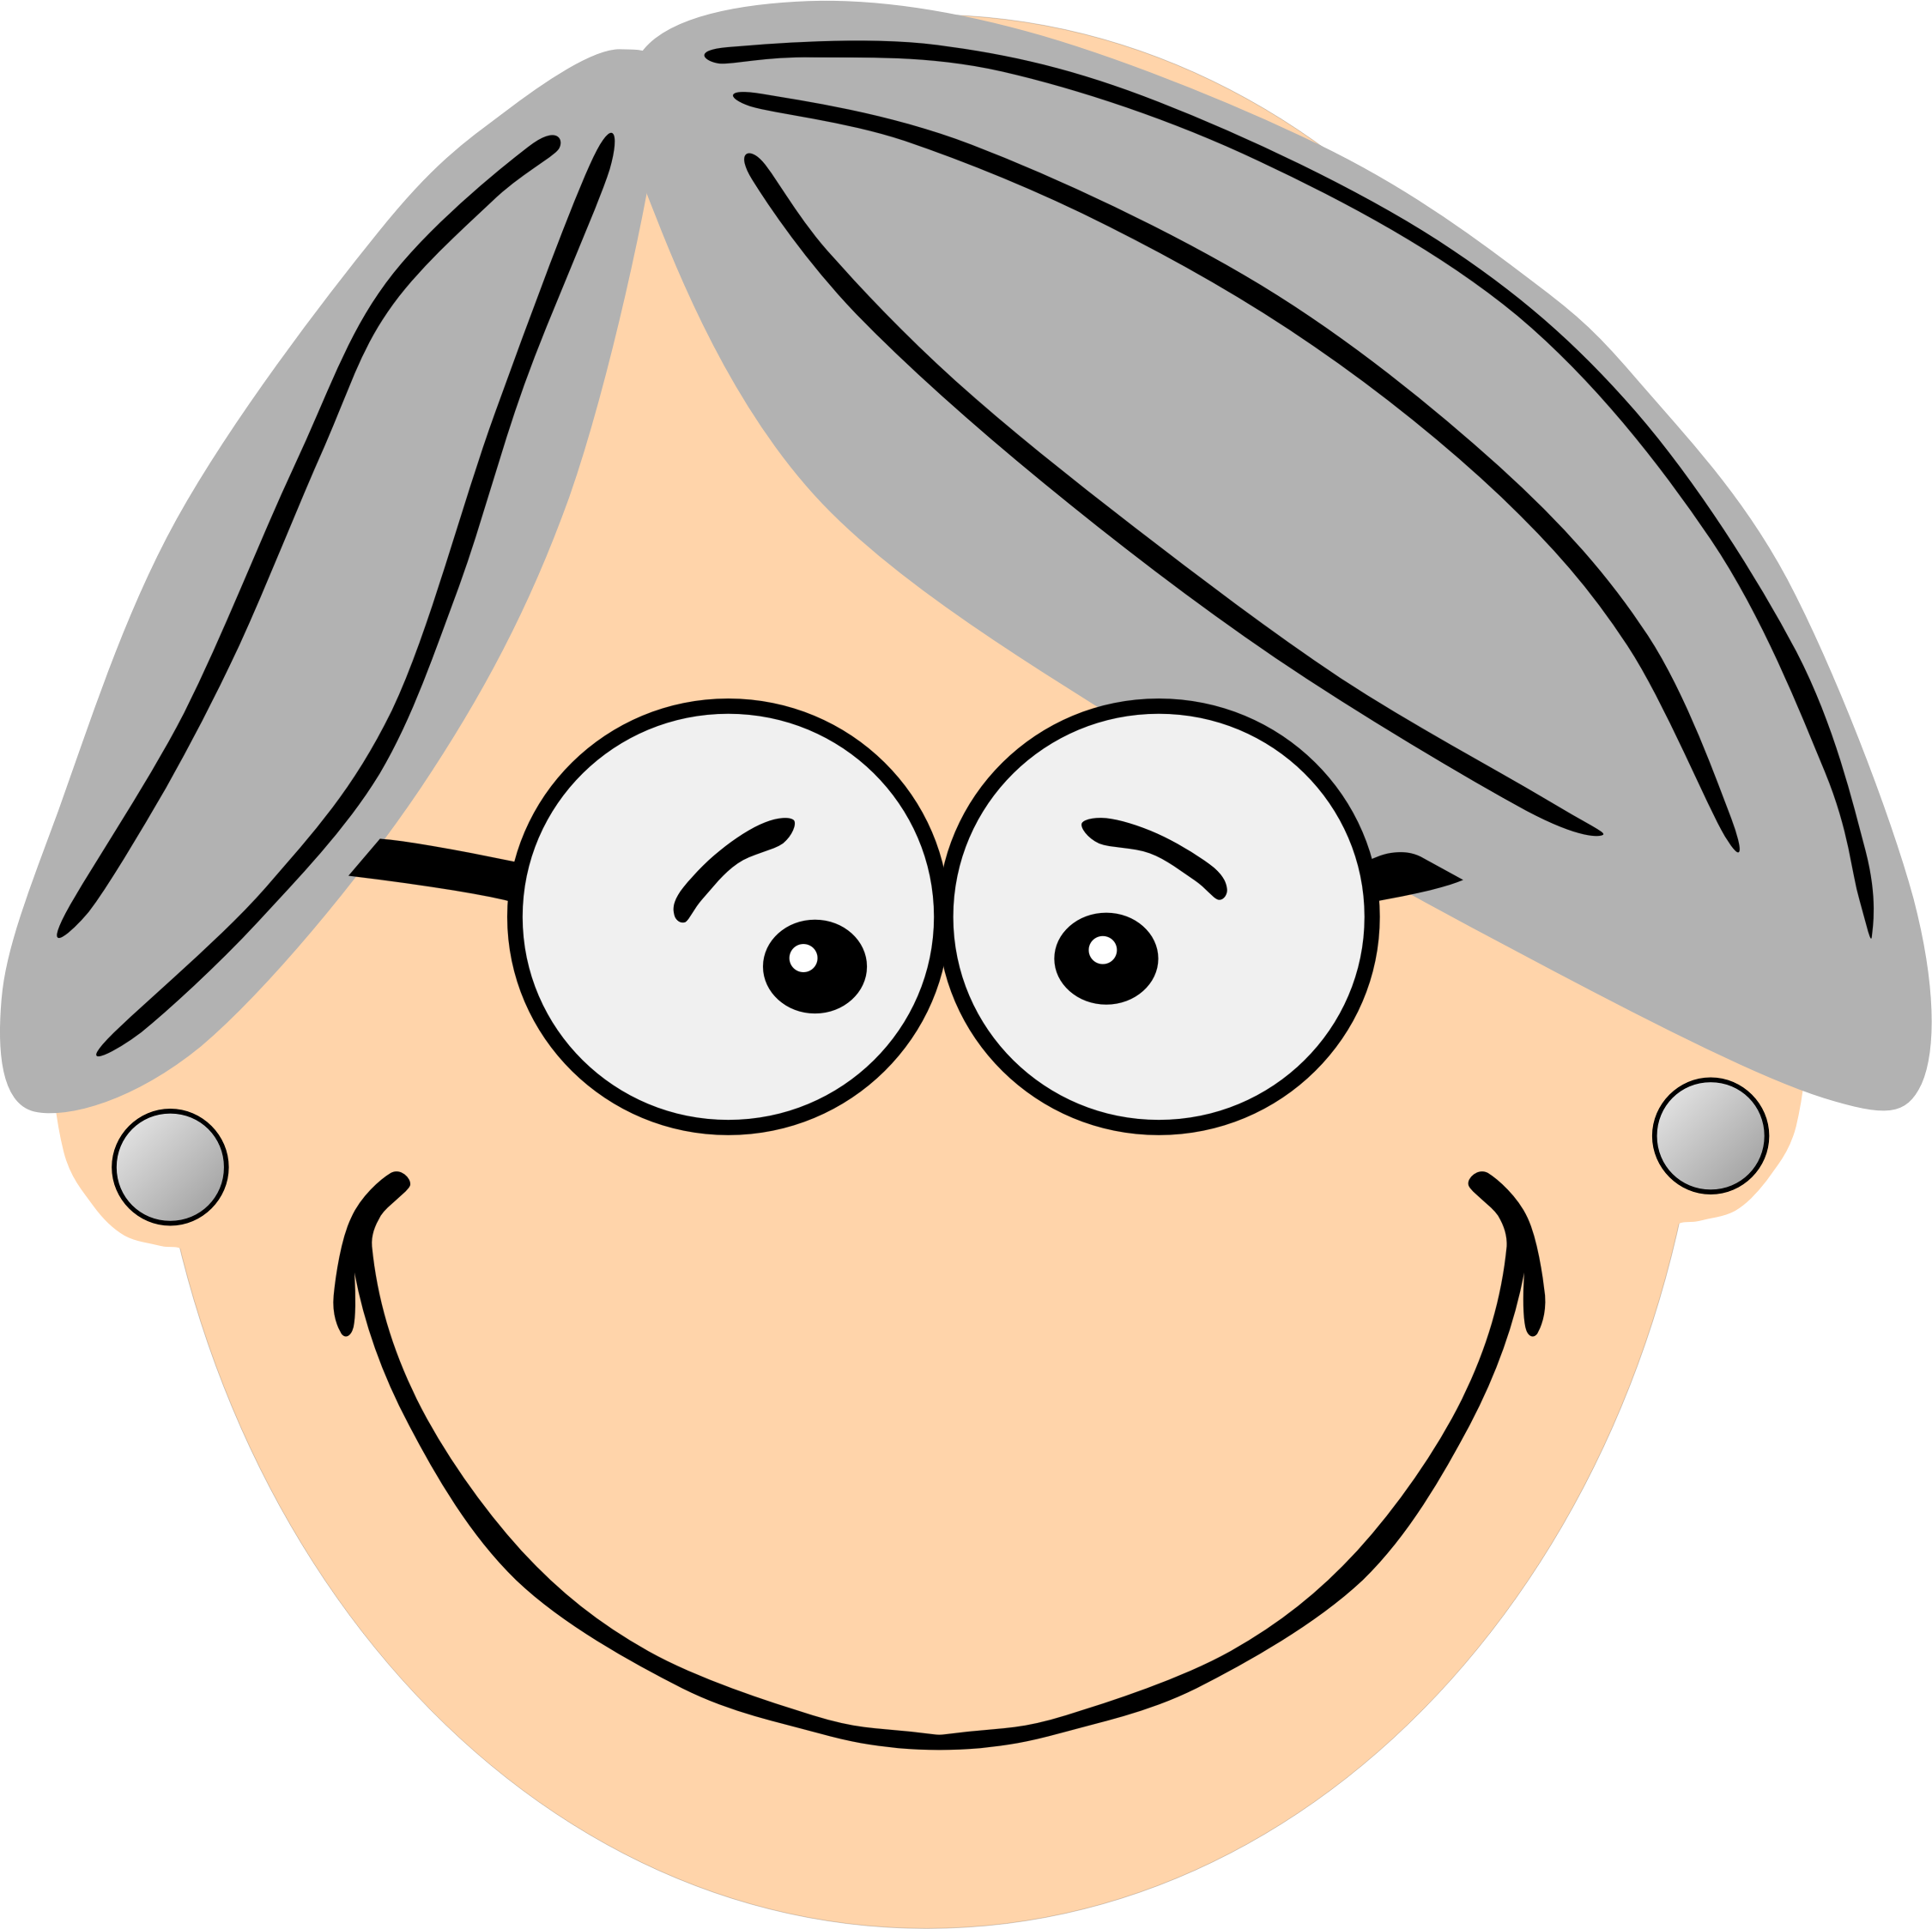 Grandparent clipart coloring. Related image grandparents pinterest